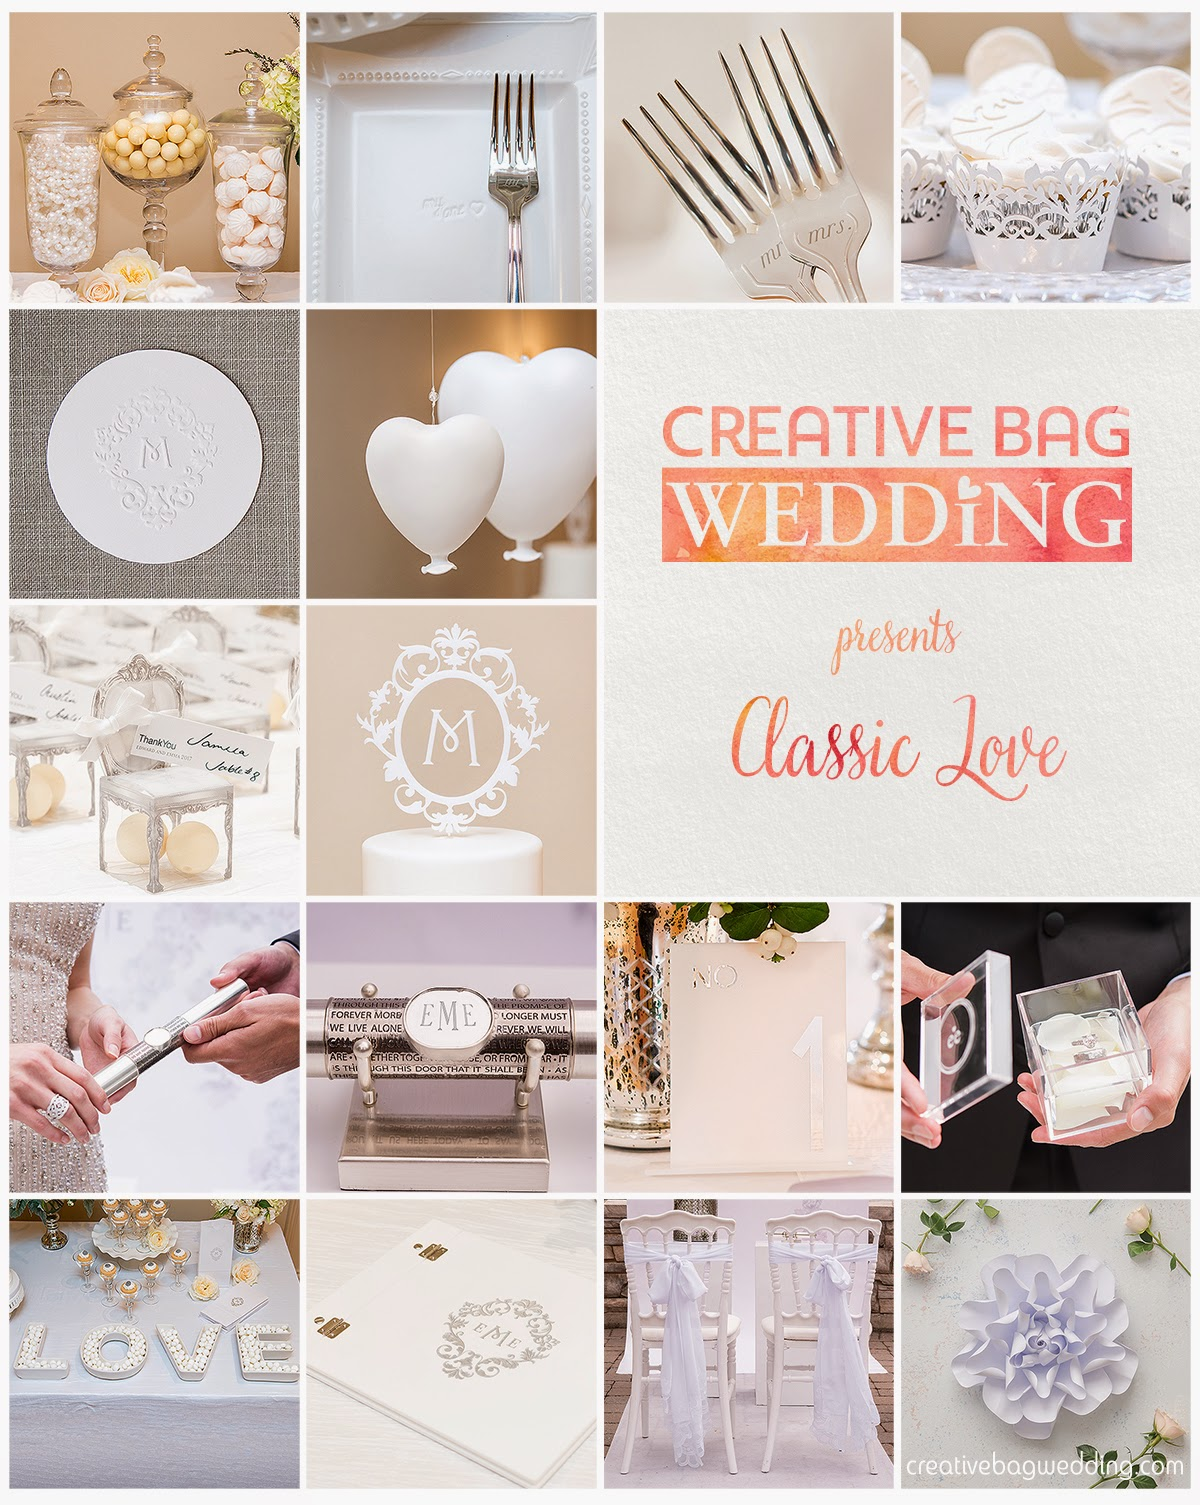 classic love mood boards | Creative Bag Wedding